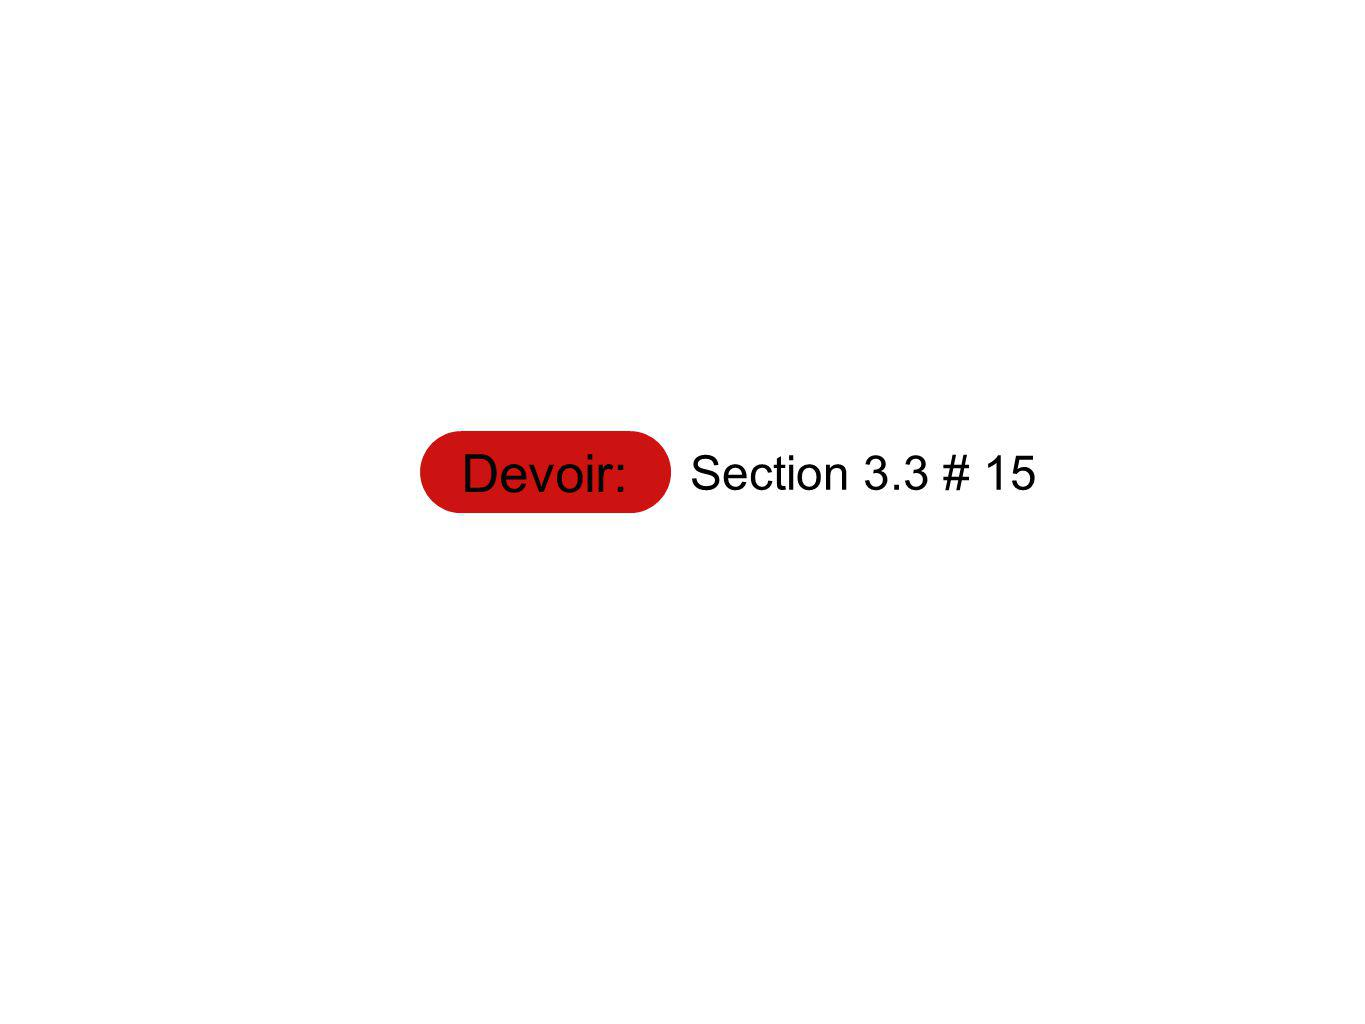 Devoir: Section 3.3 # 15